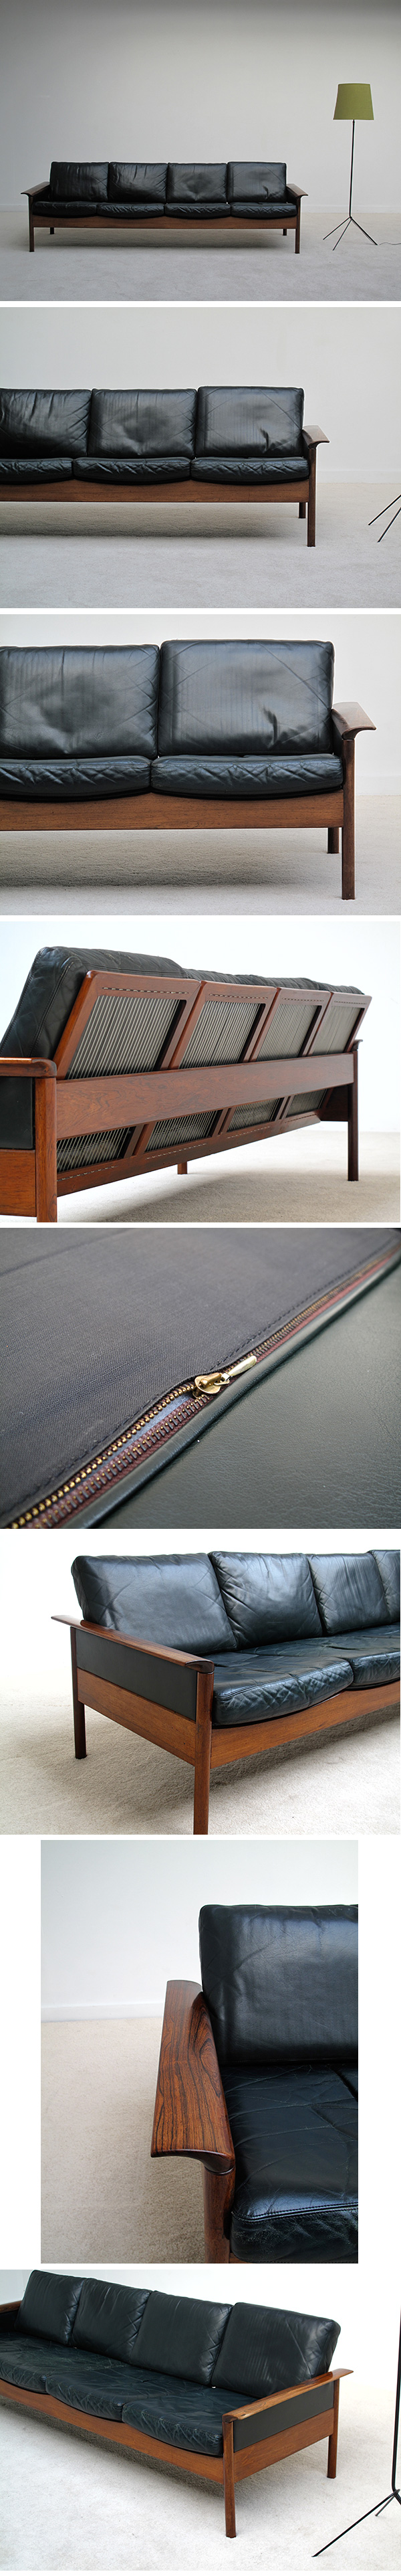 Hans Olsen, rosewood, black, leather, seat, sofa, 1960s